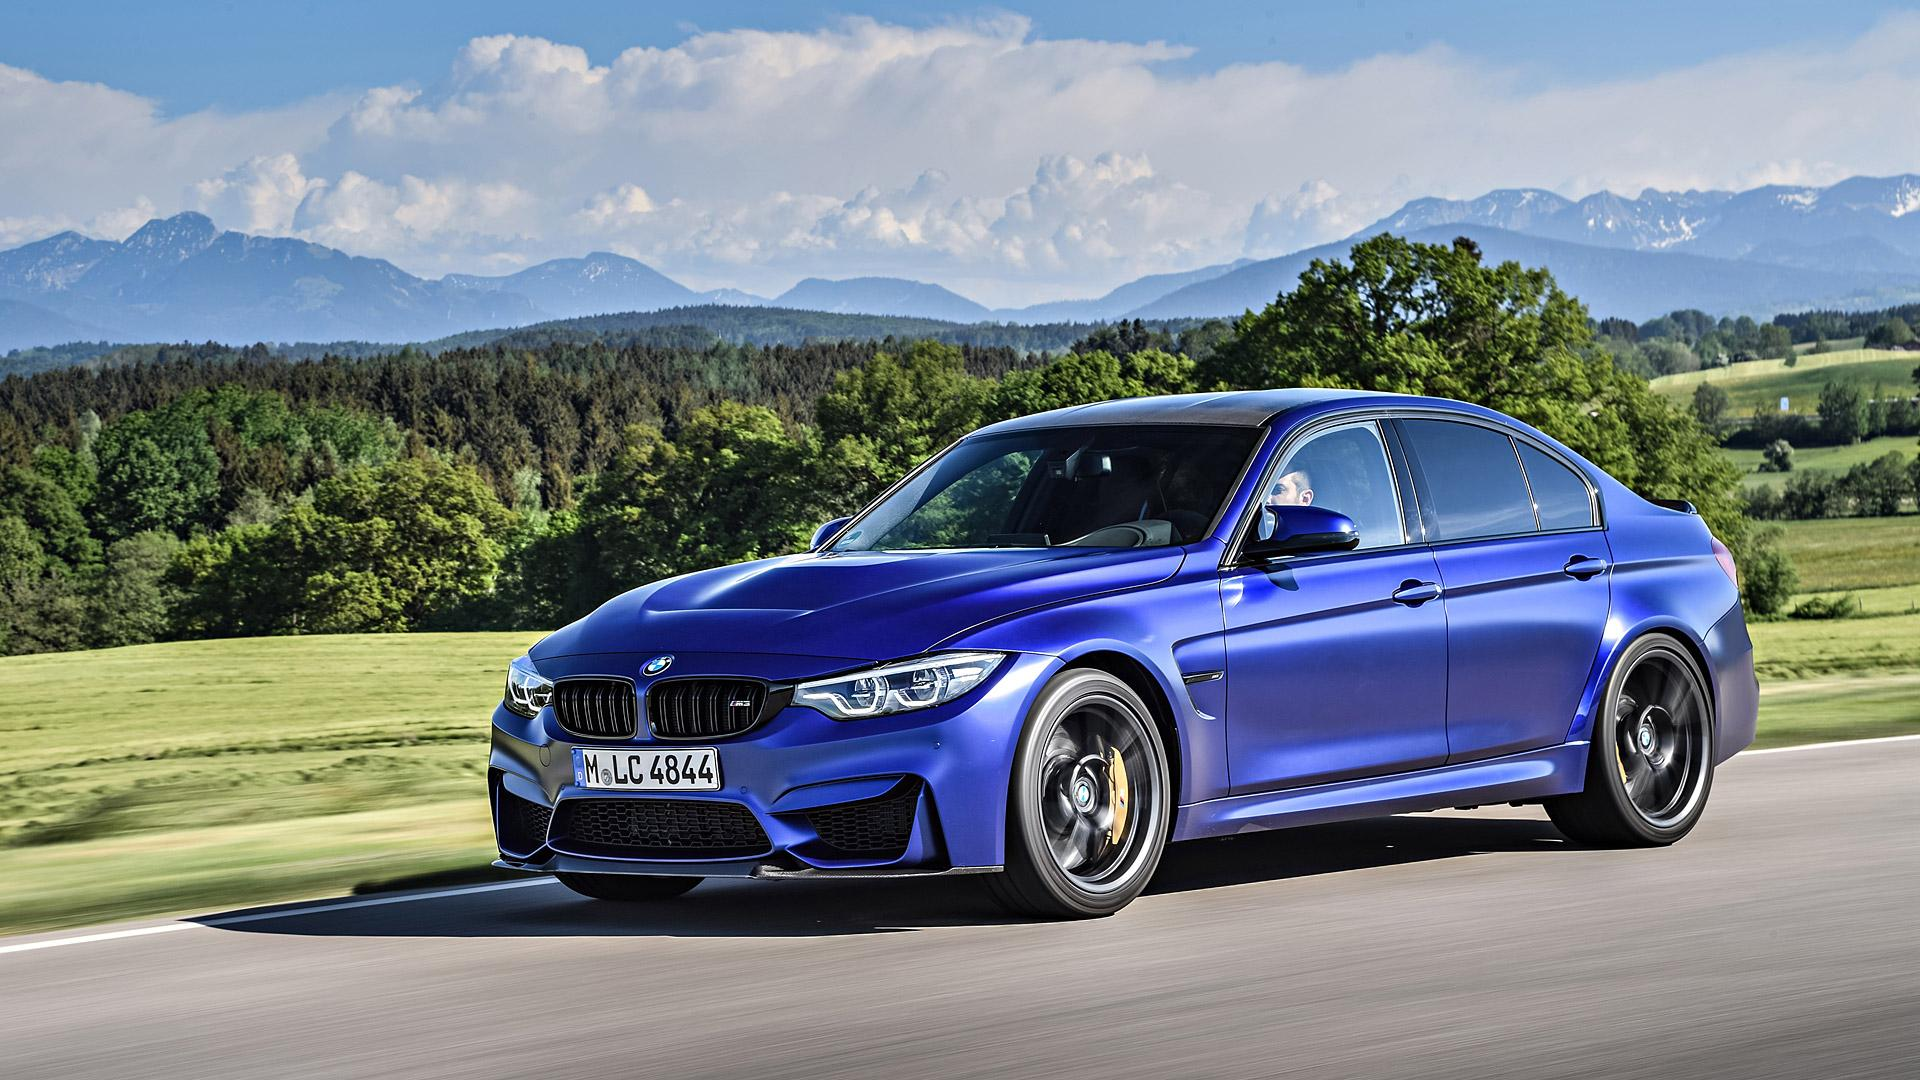 BMW M3 2019 Wallpapers - Wallpaper Cave